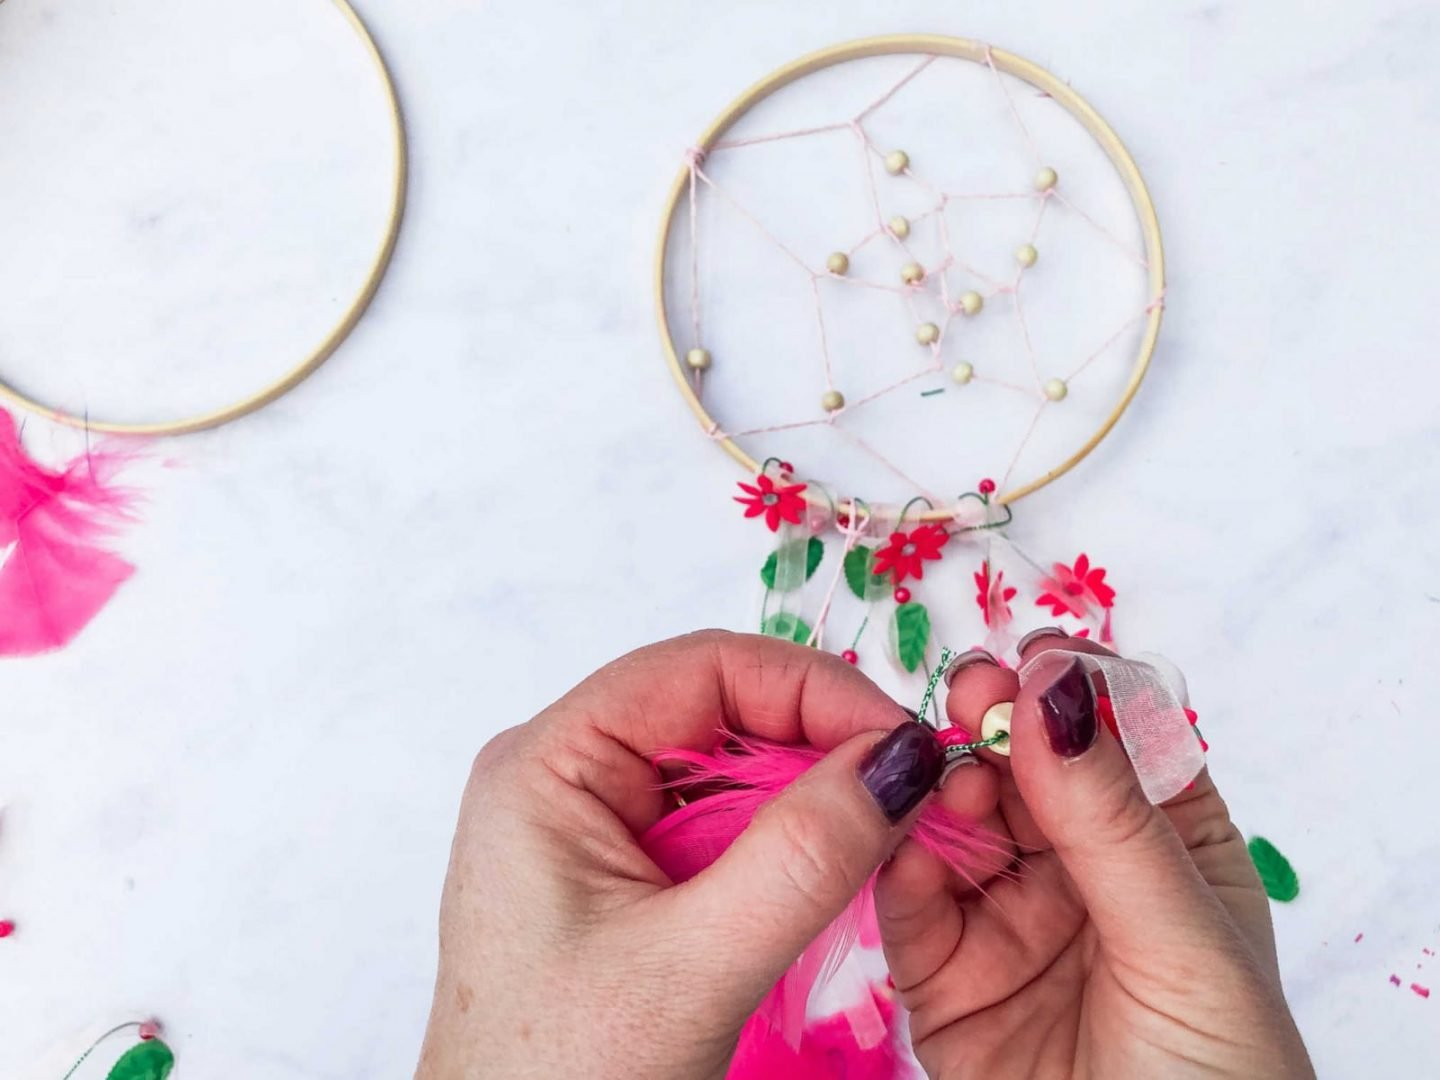 Adding ribbon to embroidery hoop